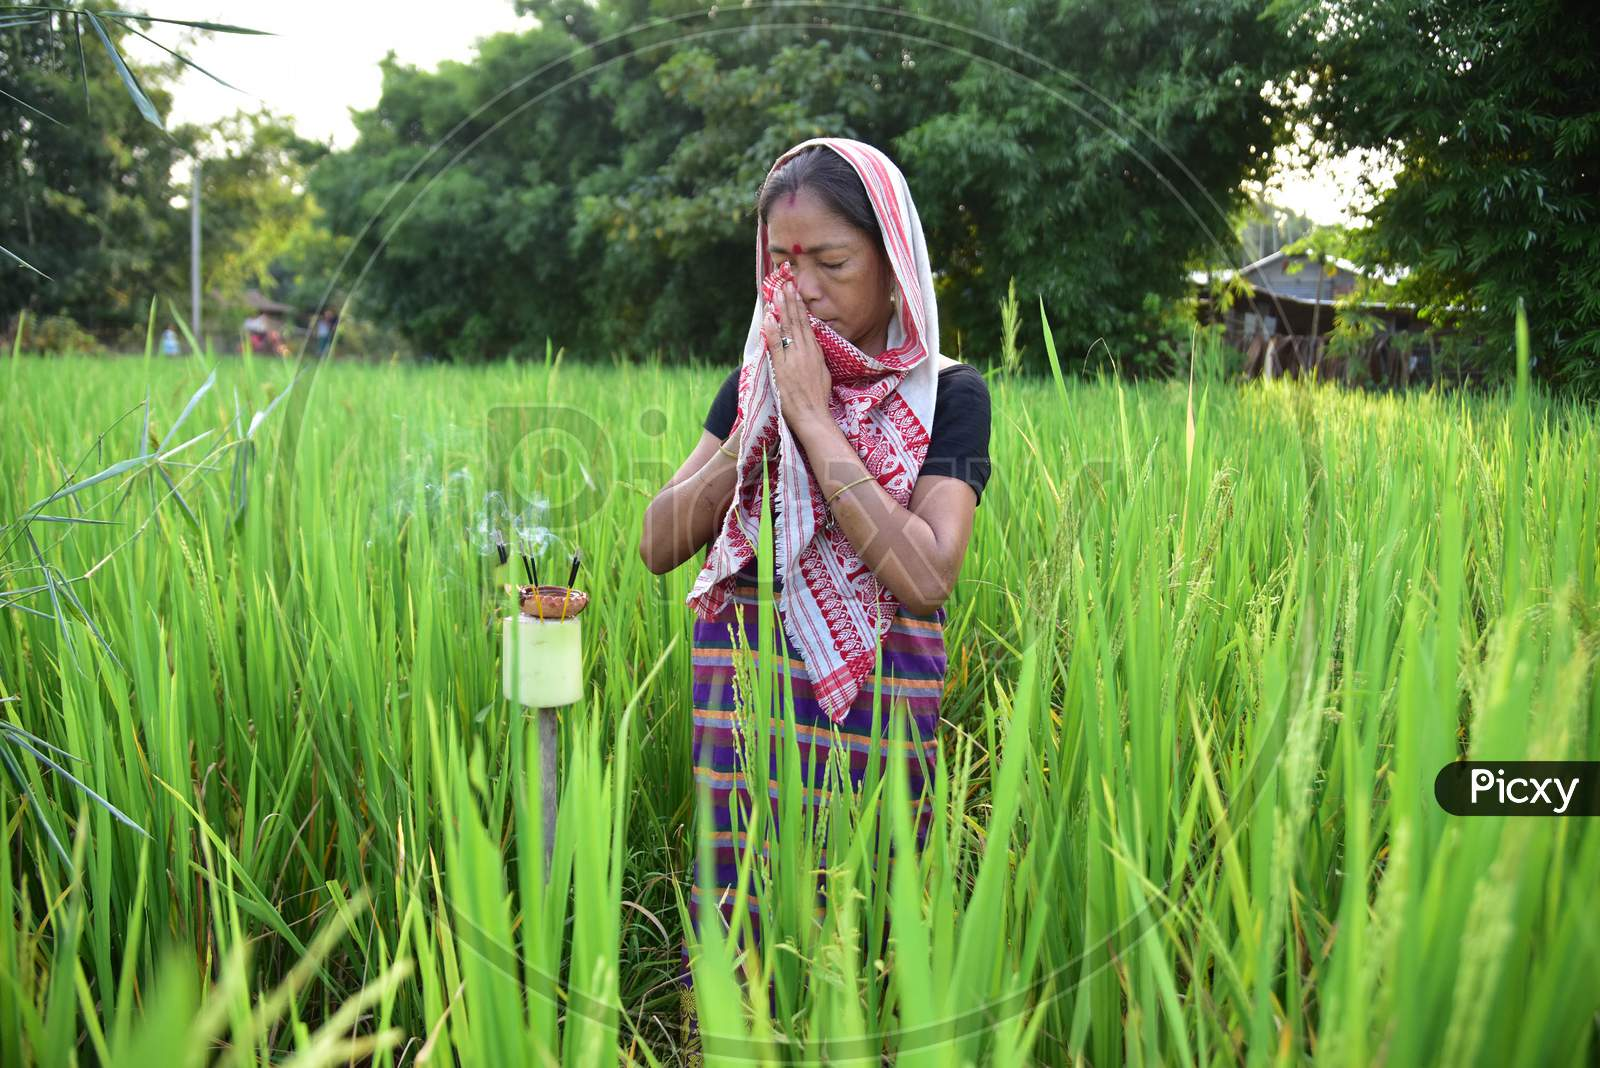 Women   offers prayers in his paddy field on the occasion of 'Kati Bihu' or 'Kangali Bihu' festival, celebrated by lightning candles and lamps to ask for the health of the crops, in Rani village on the outskirts of Guwahati on Oct 17,2020.